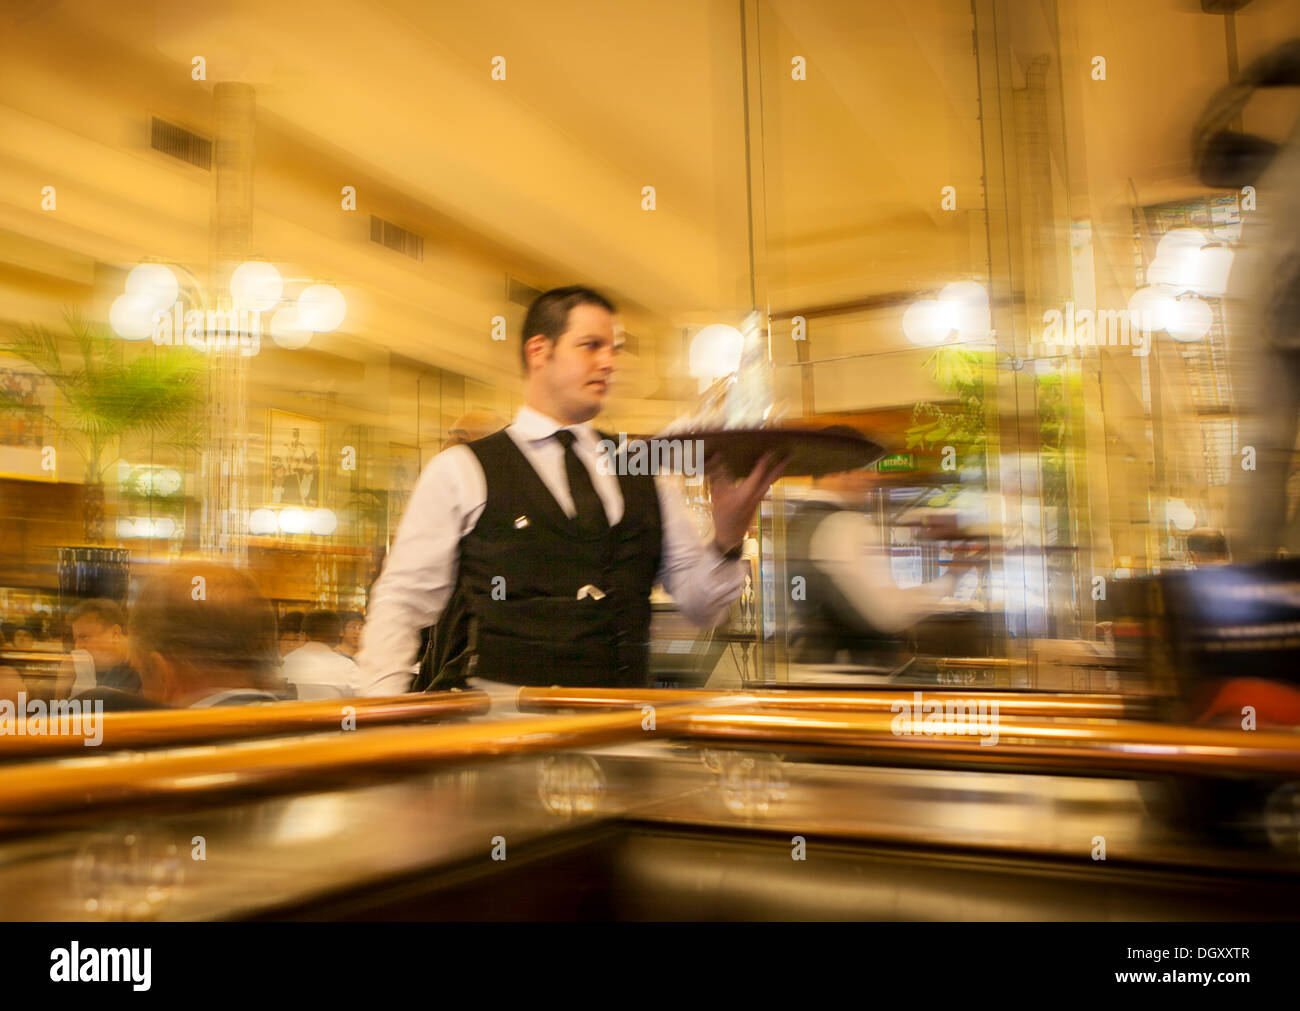 French waiter holding a tray rushing through a bar restaurant in Paris - Stock Image